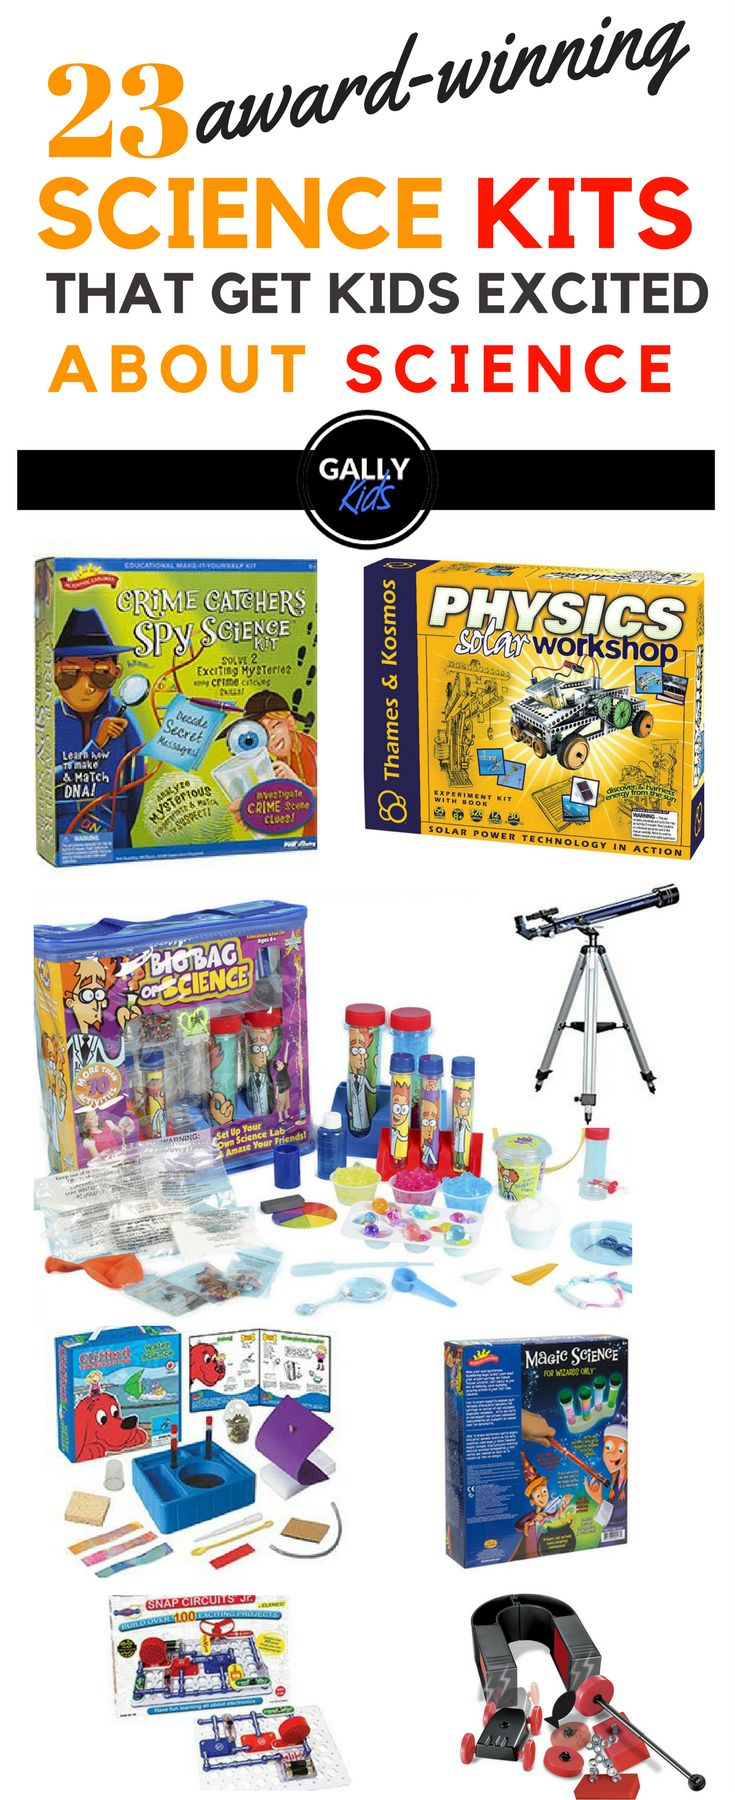 Experiments kits for kids. A list of award-winning sets to make kids interested in Science. Great for STEMactivities and projects. A fun way for kids to grasp Science concepts. Makes a for a great #birthdaygifts and #christmasgifts